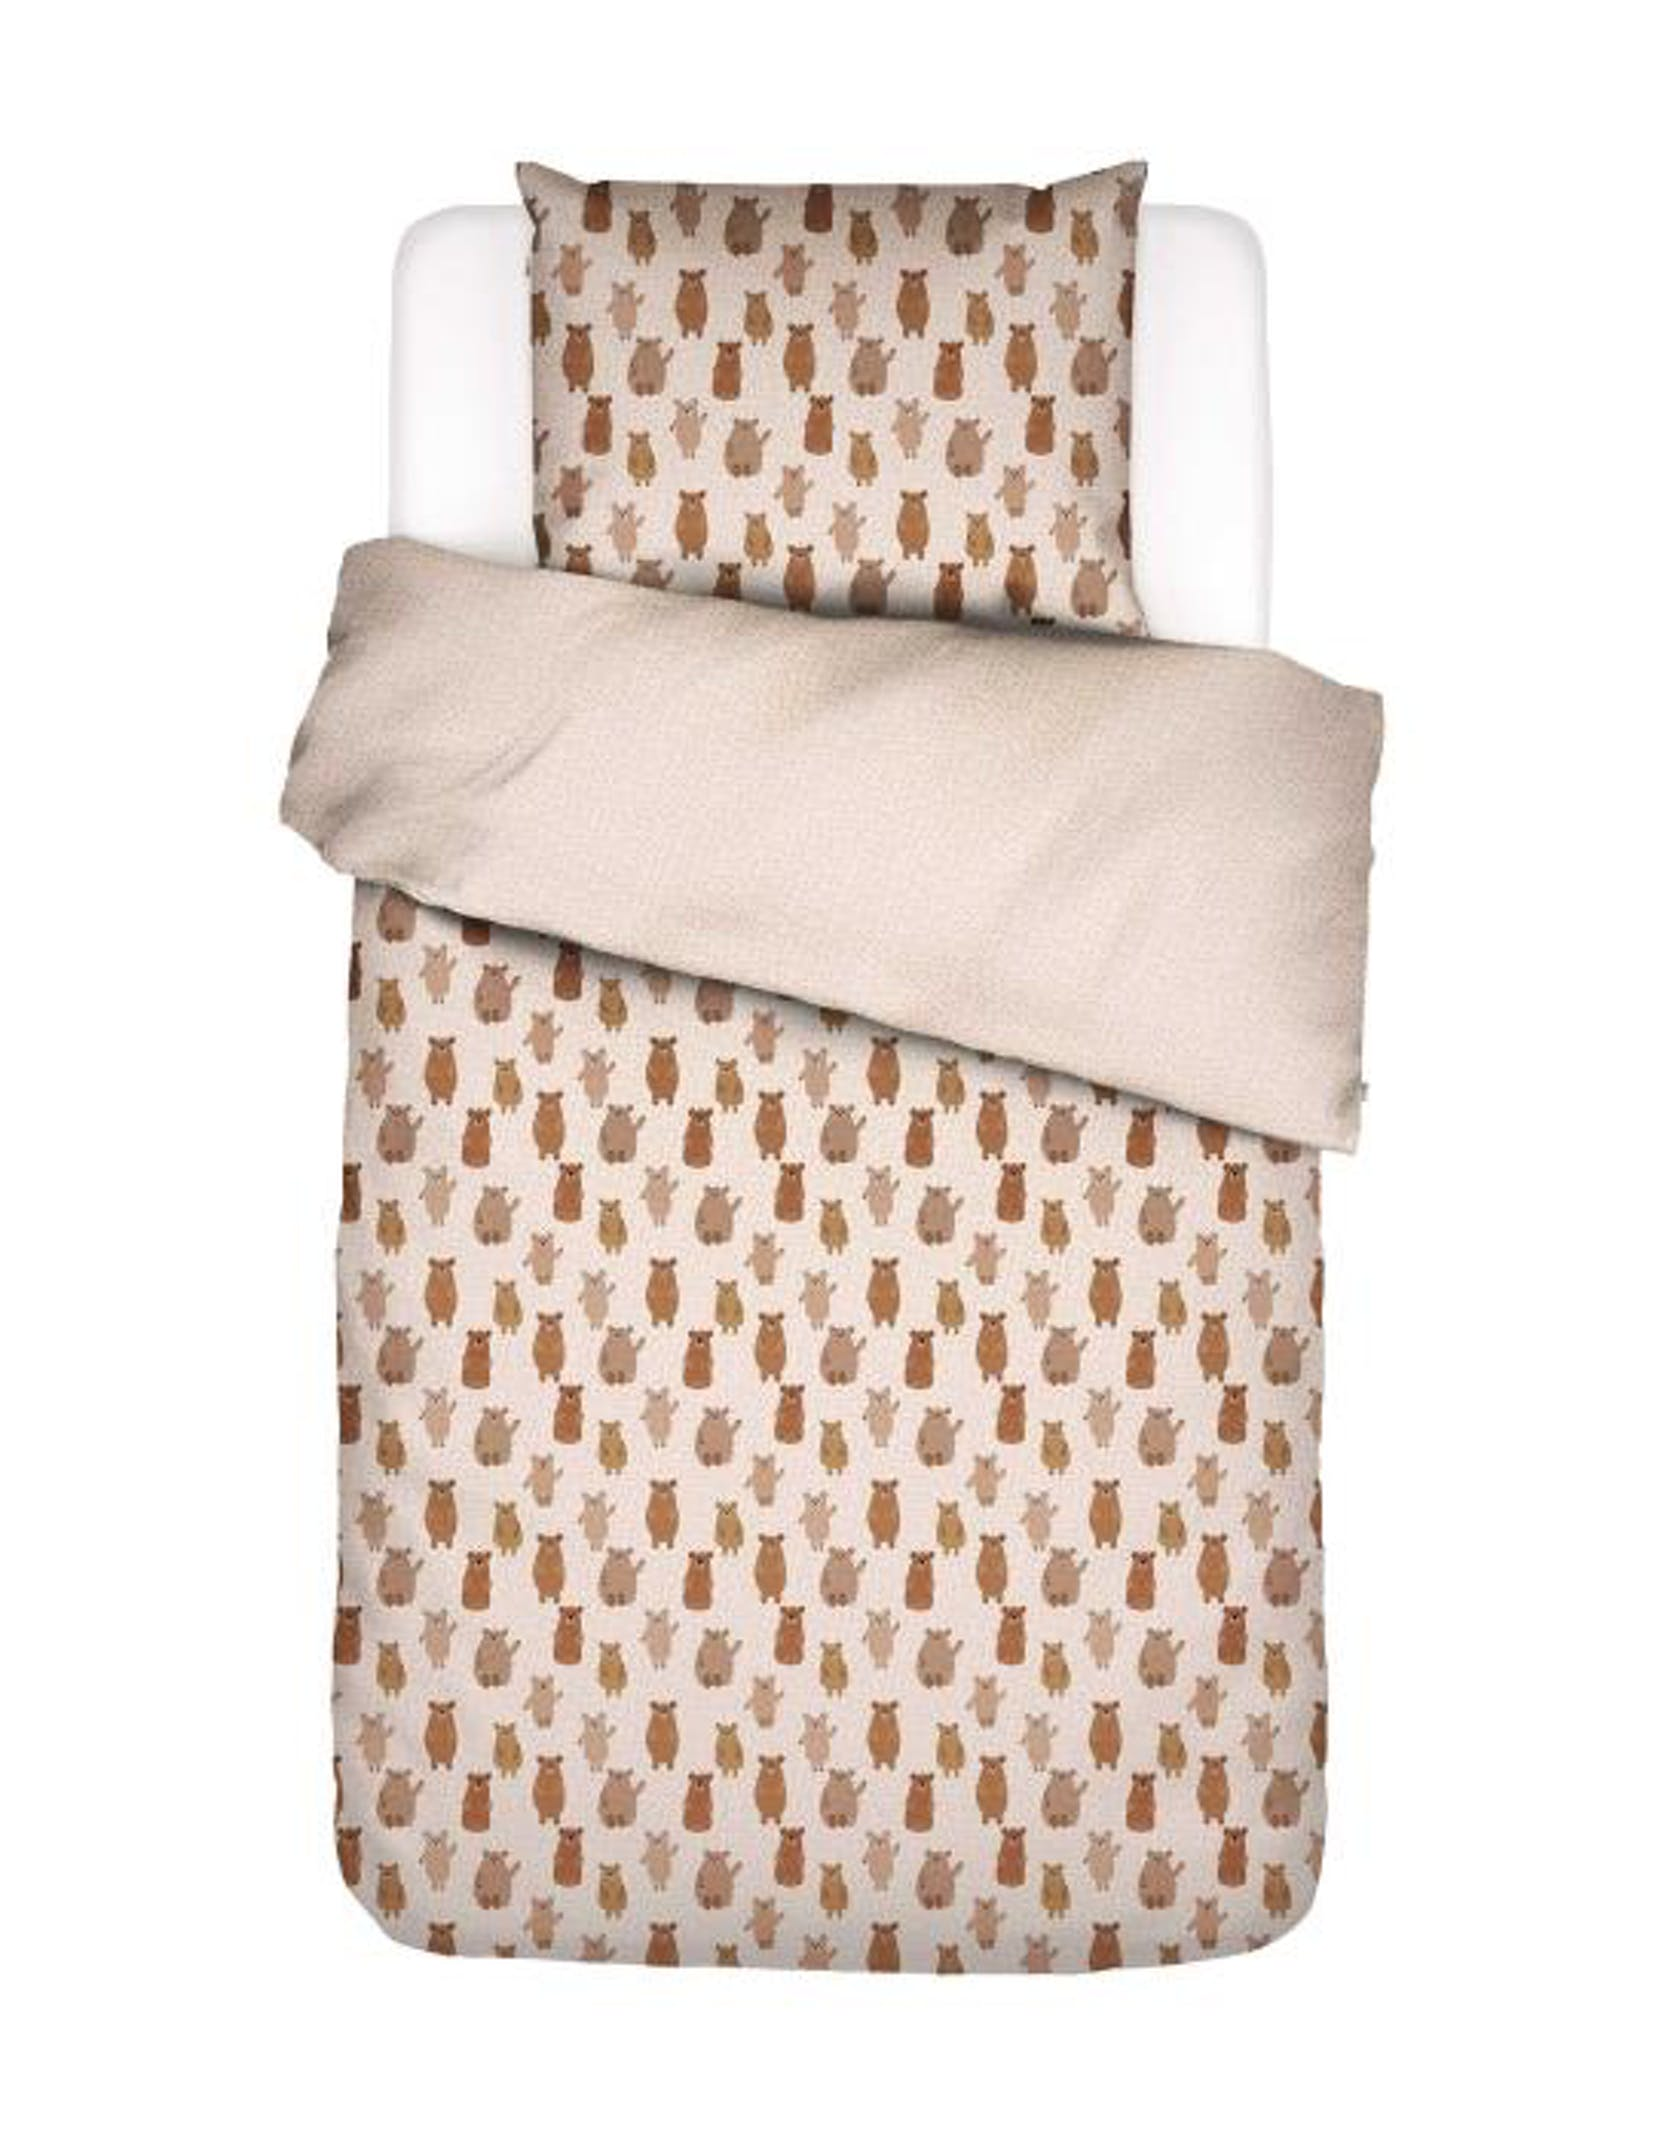 Covers & Co Beary much Brown Duvet cover 140 x 220